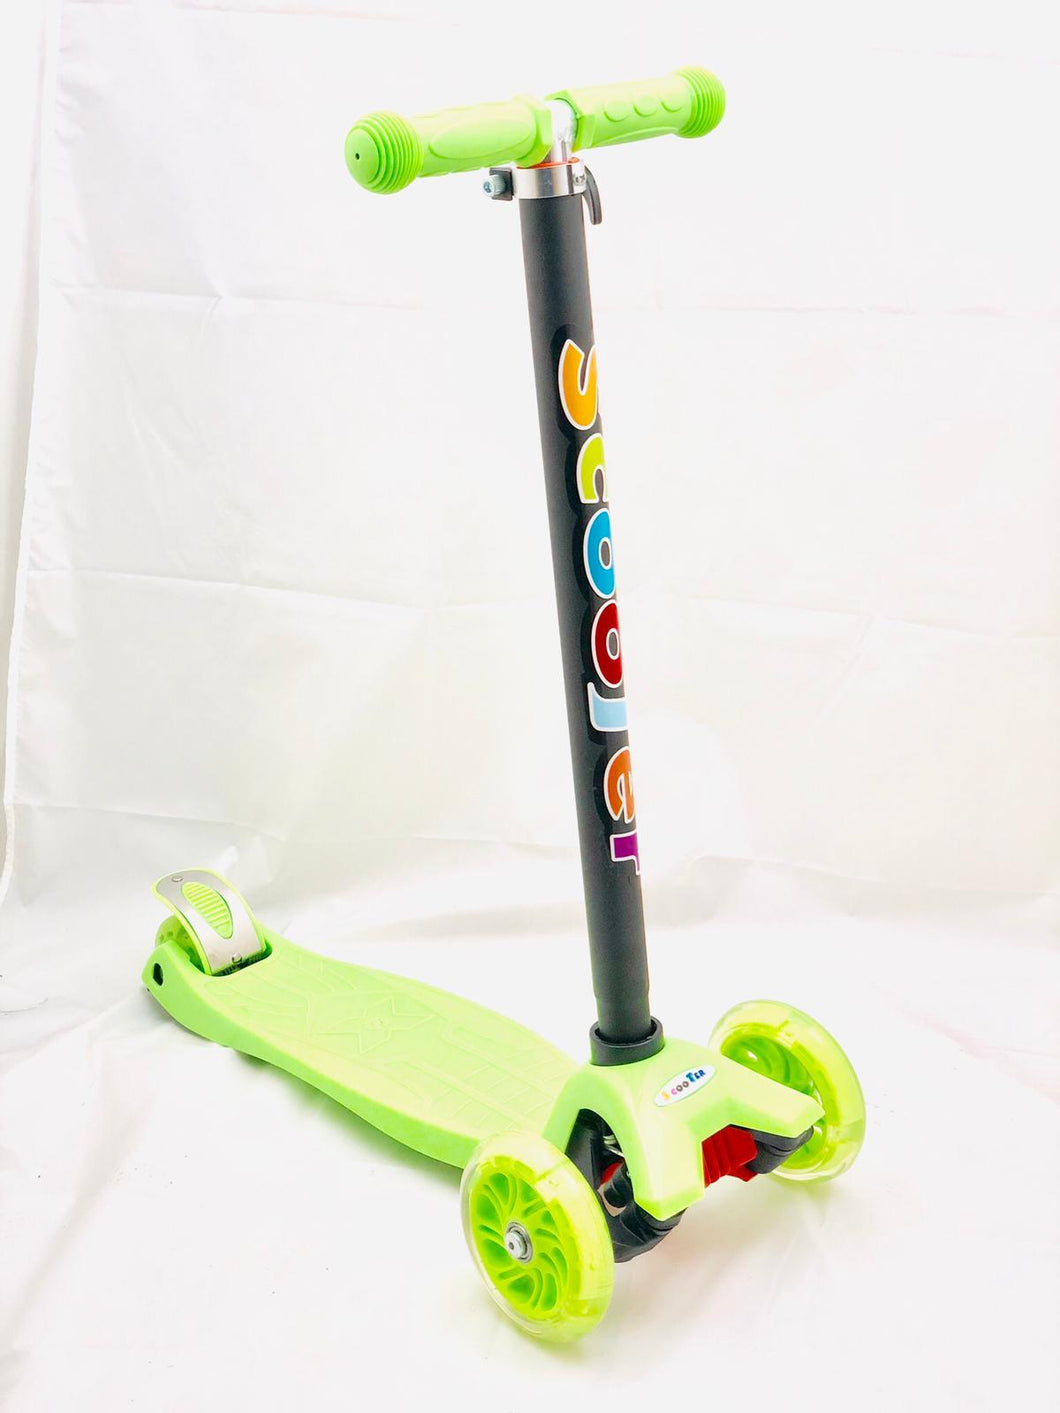 Kids 3 Wheel Scooter with LED Motion Lights Green Age 4+ HALF PRICE